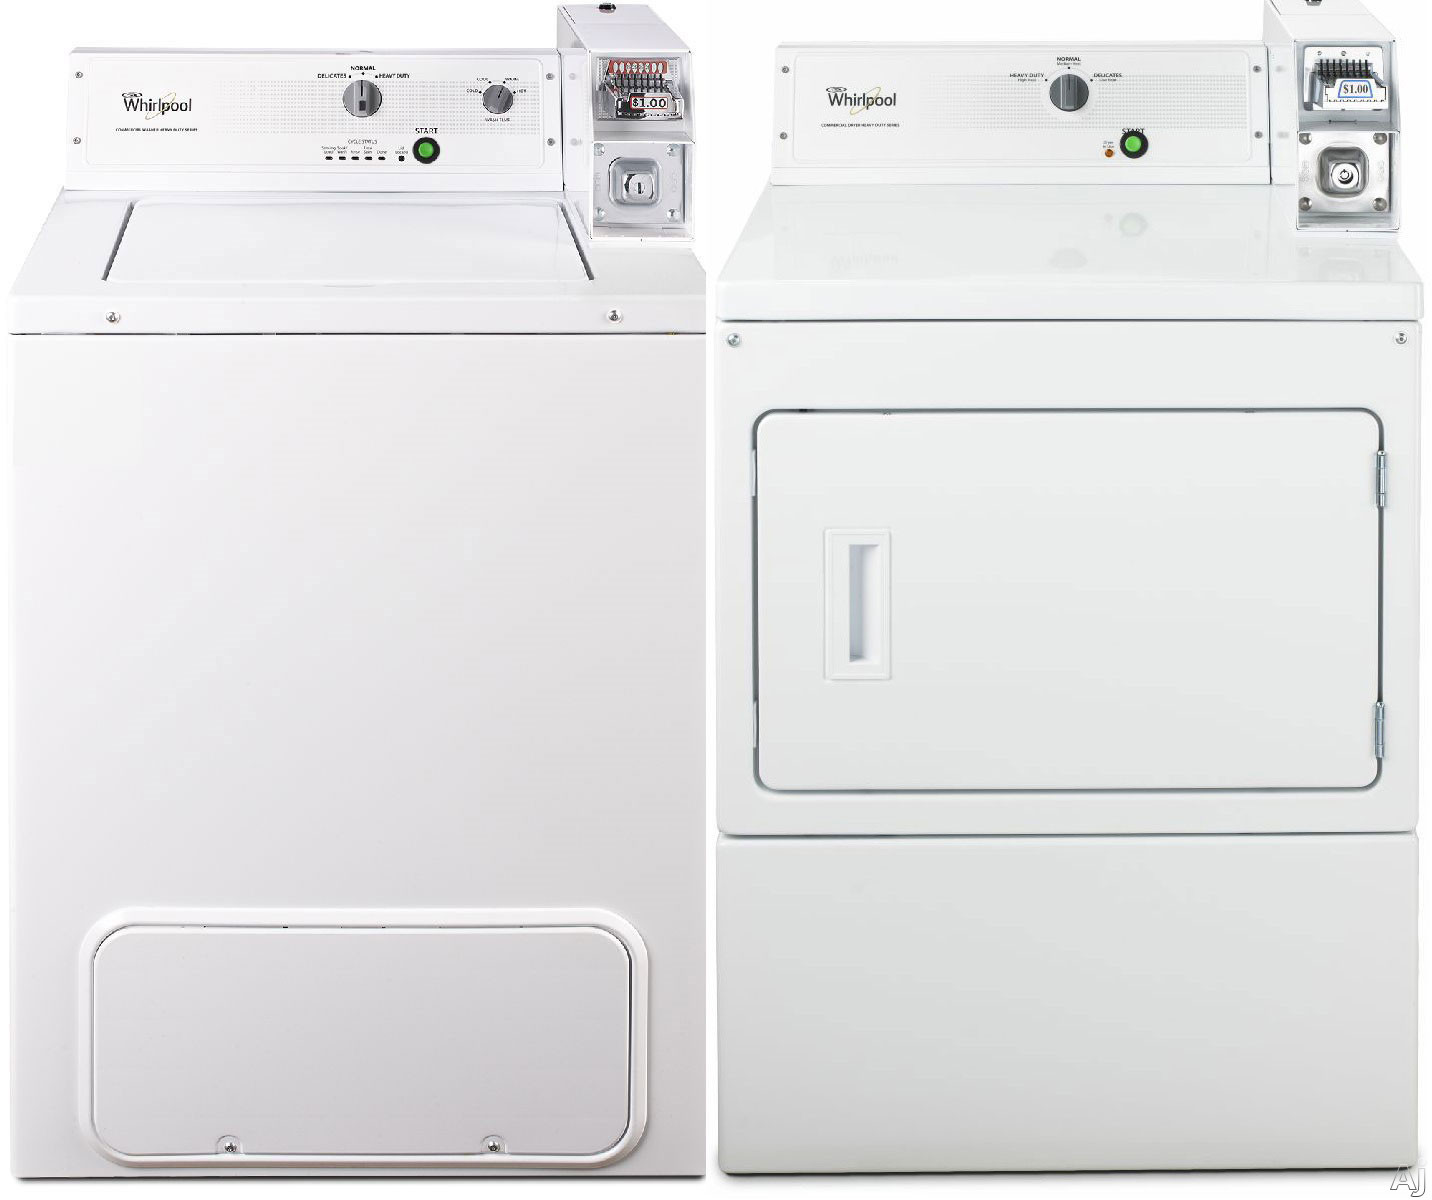 Light Commercial Washer And Dryer ~ Whirlpool whi tl series top load